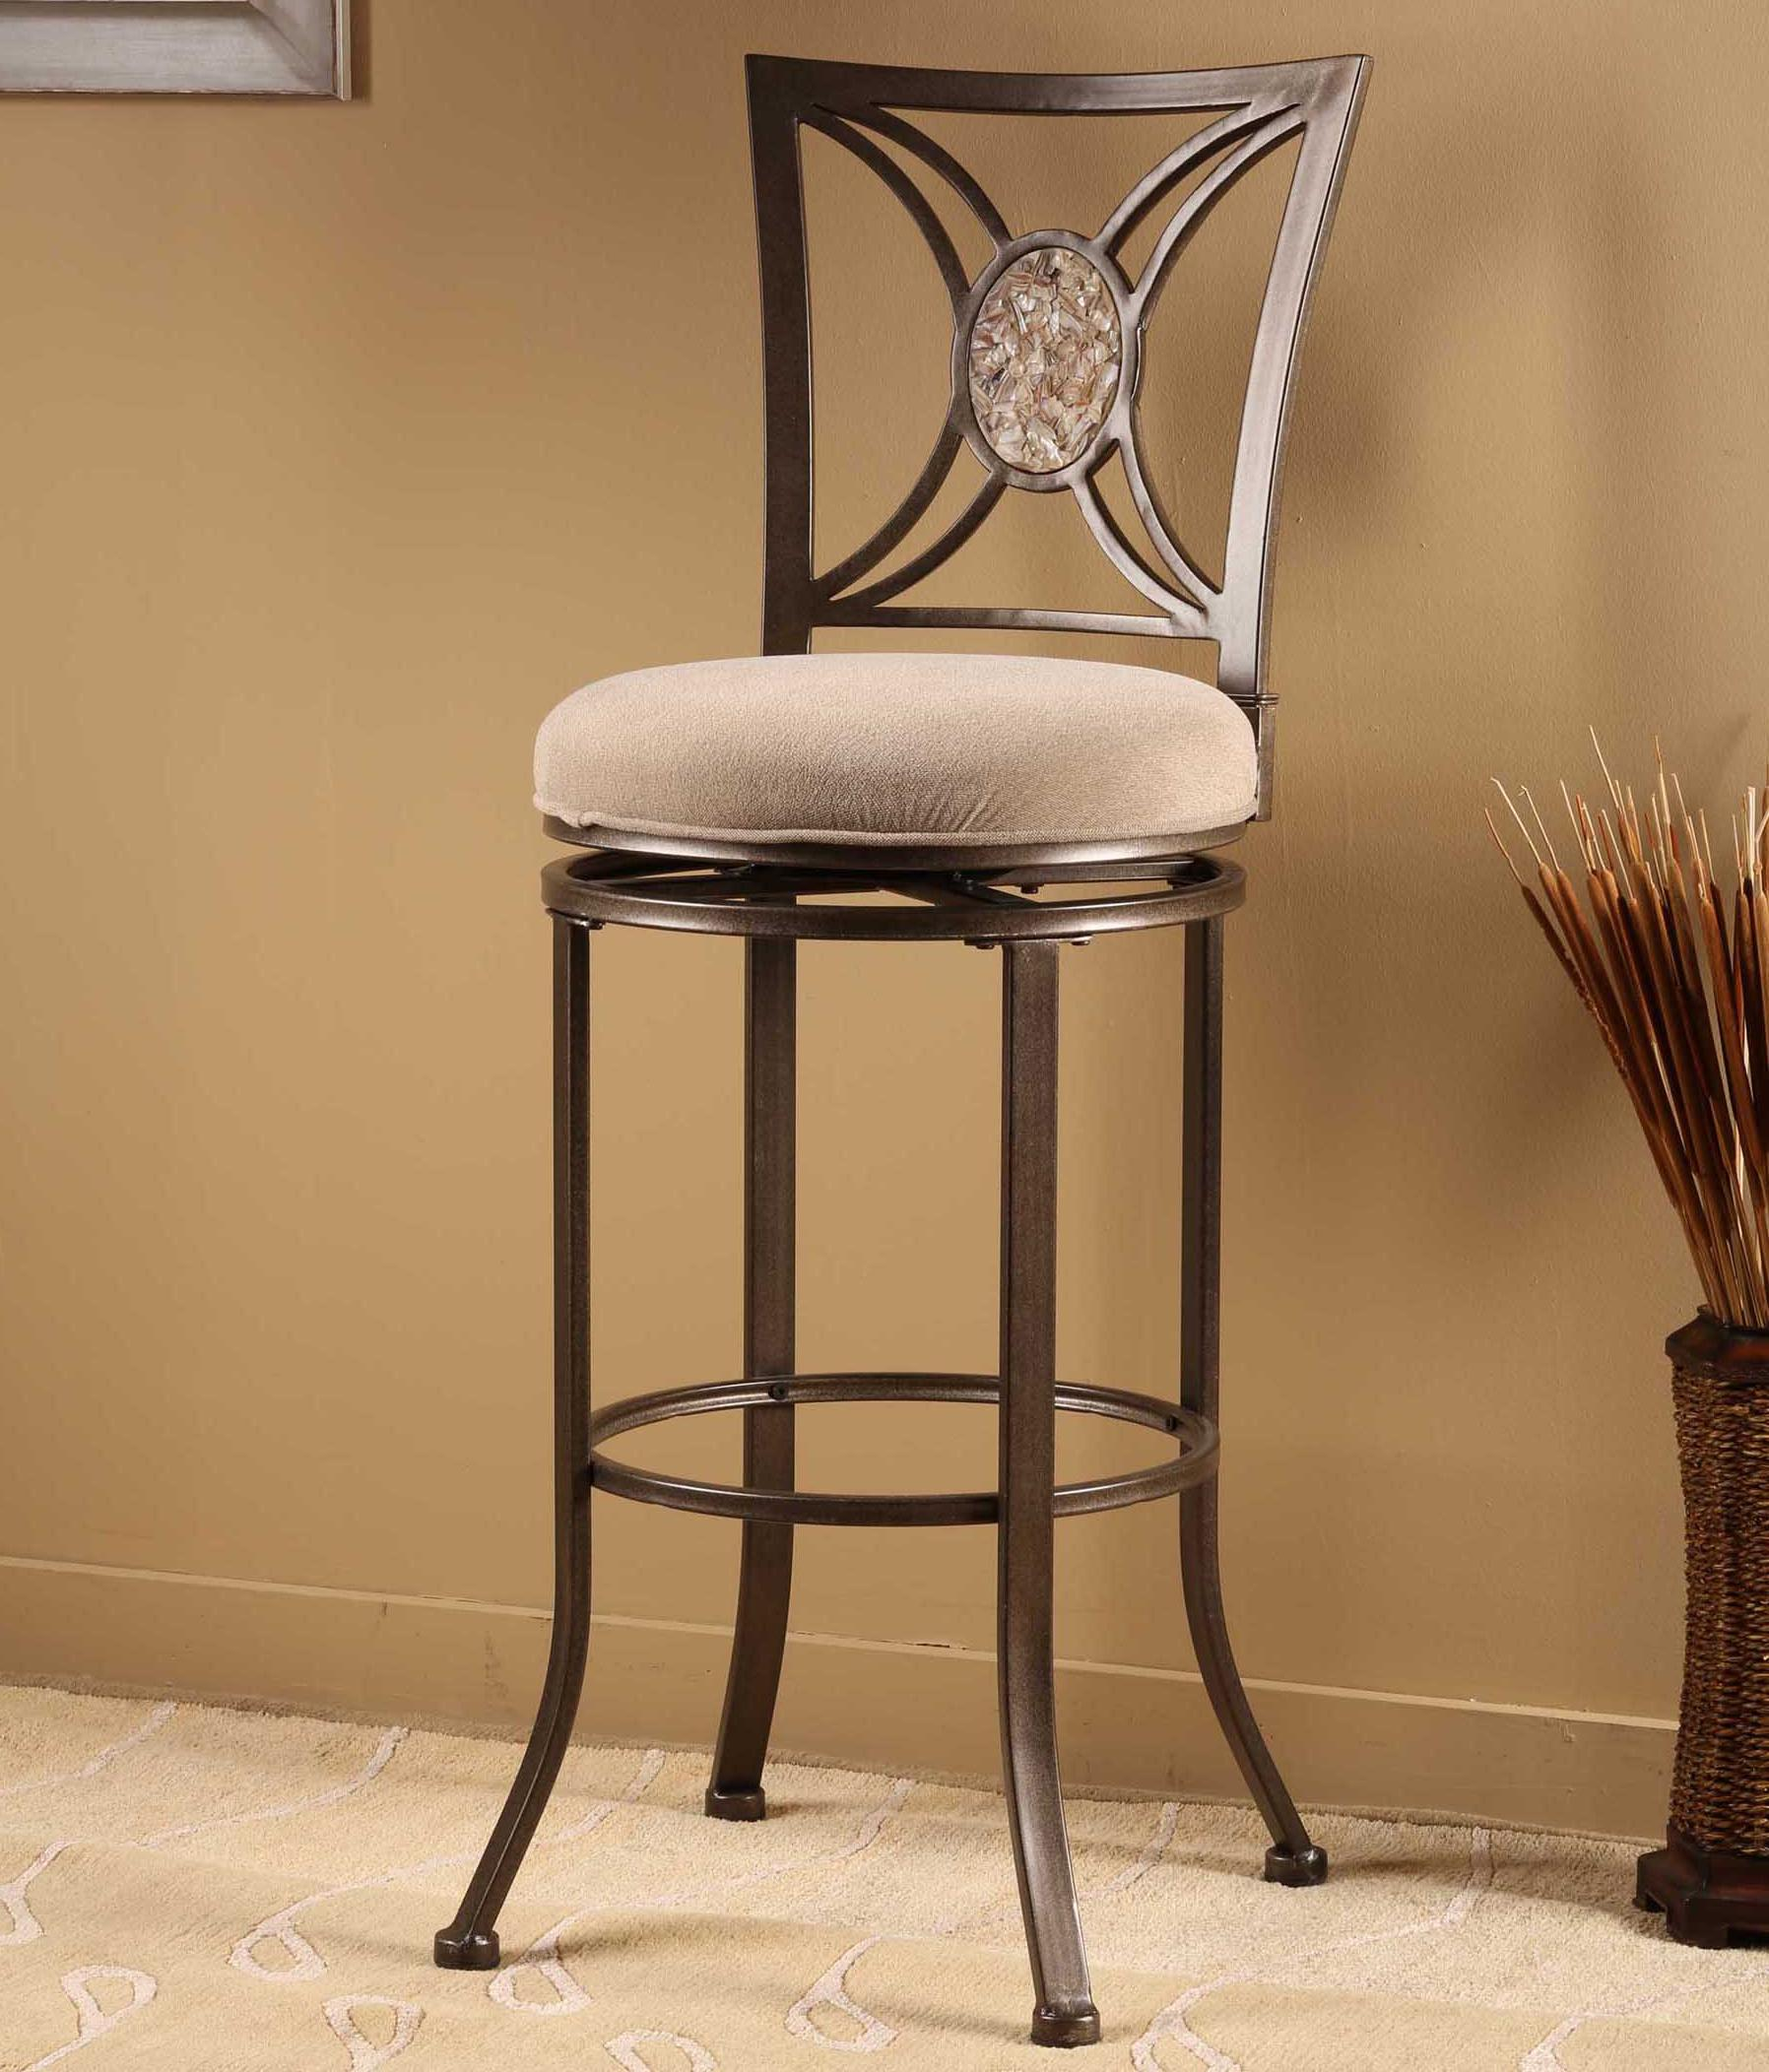 Hillsdale Metal Stools Rowan Swivel Counter Stool - Item Number: 4897-826